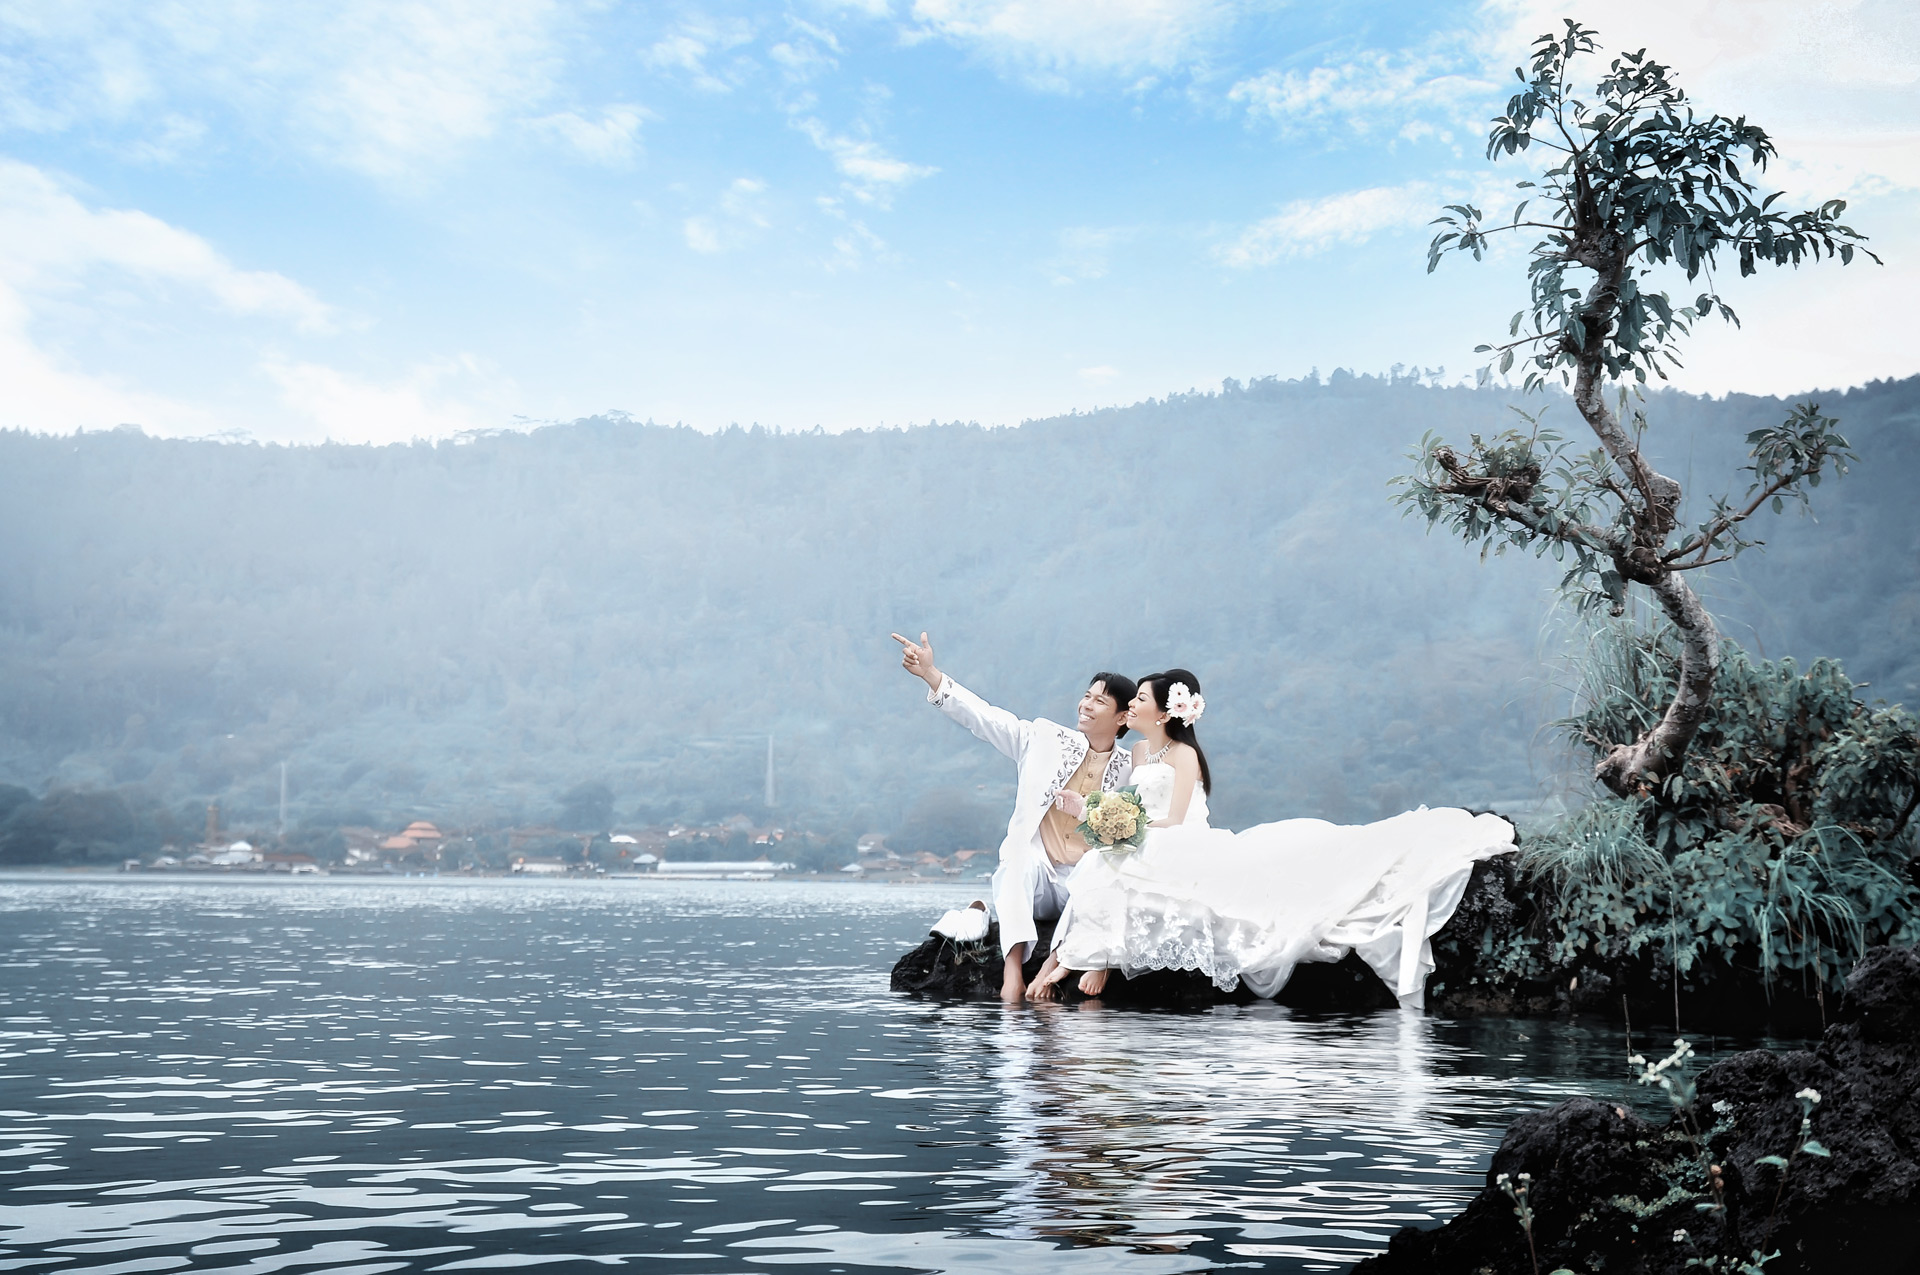 pre wedding photograph in lake batur kintamani - the bali channel